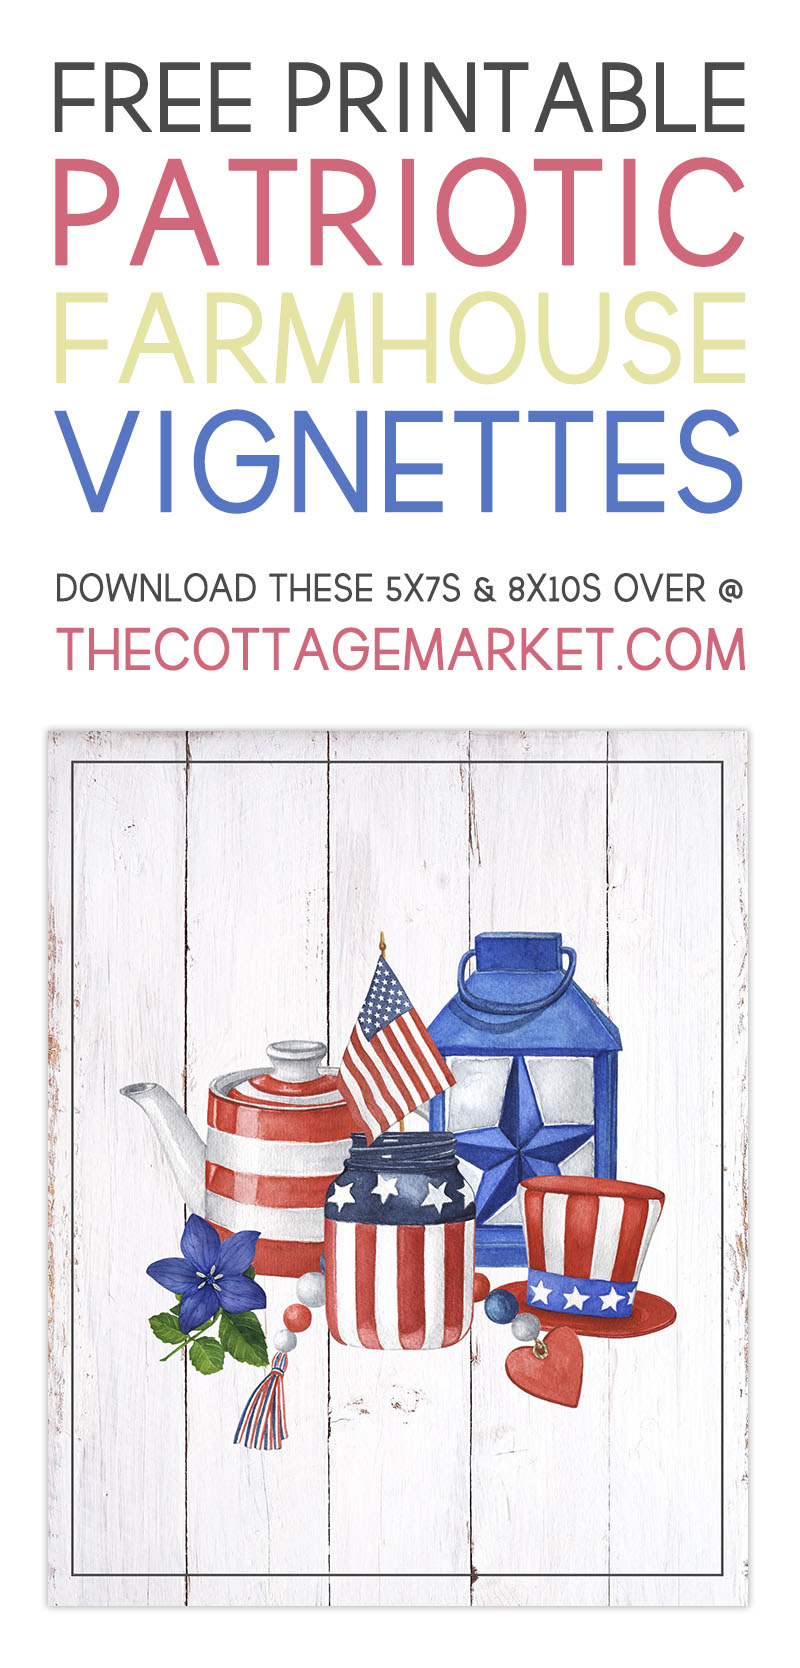 These Free Printable Patriotic Farmhouse Vignettes are going to add a touch of charm... vintage and a touch of Red, White and Blue to your space! Perfect for Memorial Day, Fourth of July and much much more